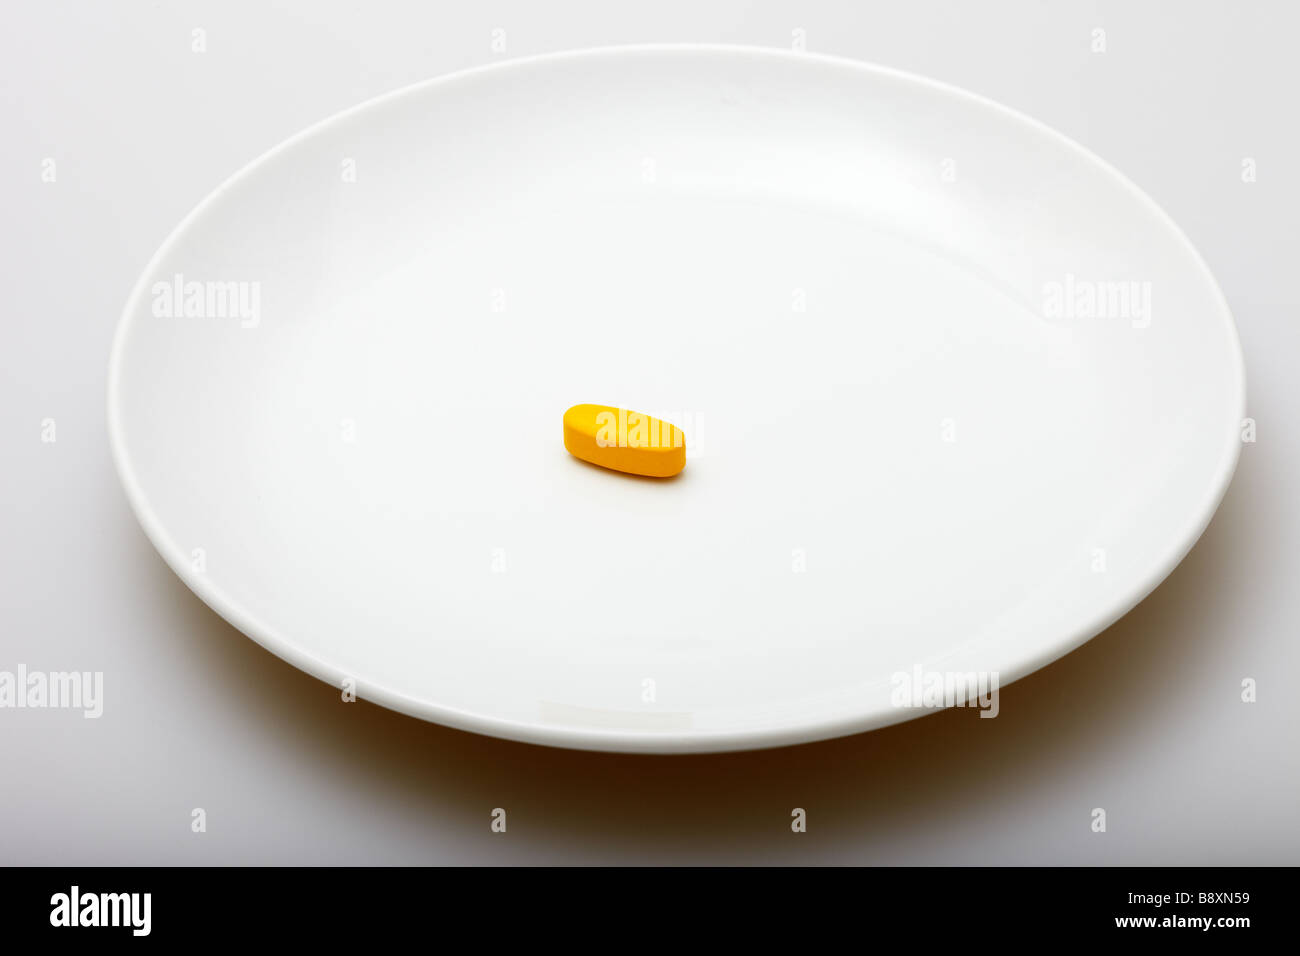 Vitamin Pill on White Plate - Stock Image